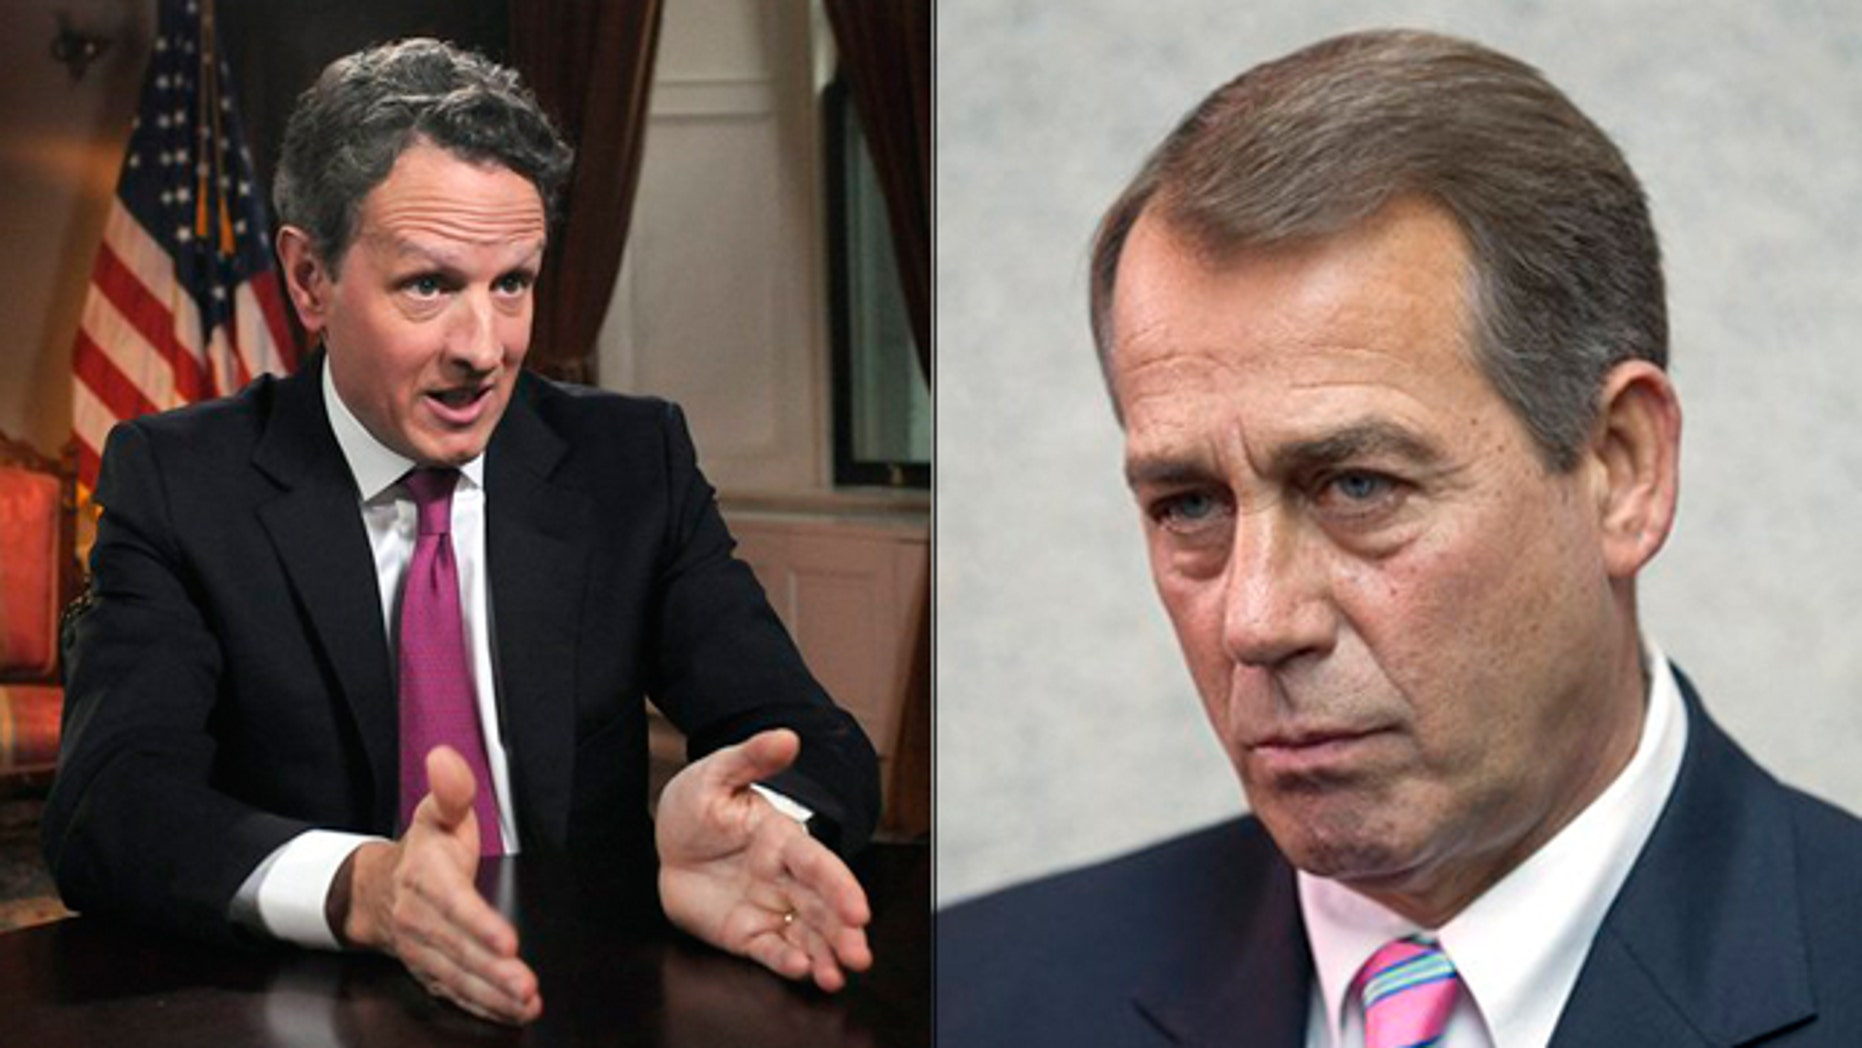 Shown here are Treasury Secretary Tim Geithner, left, and House Speaker John Boehner.